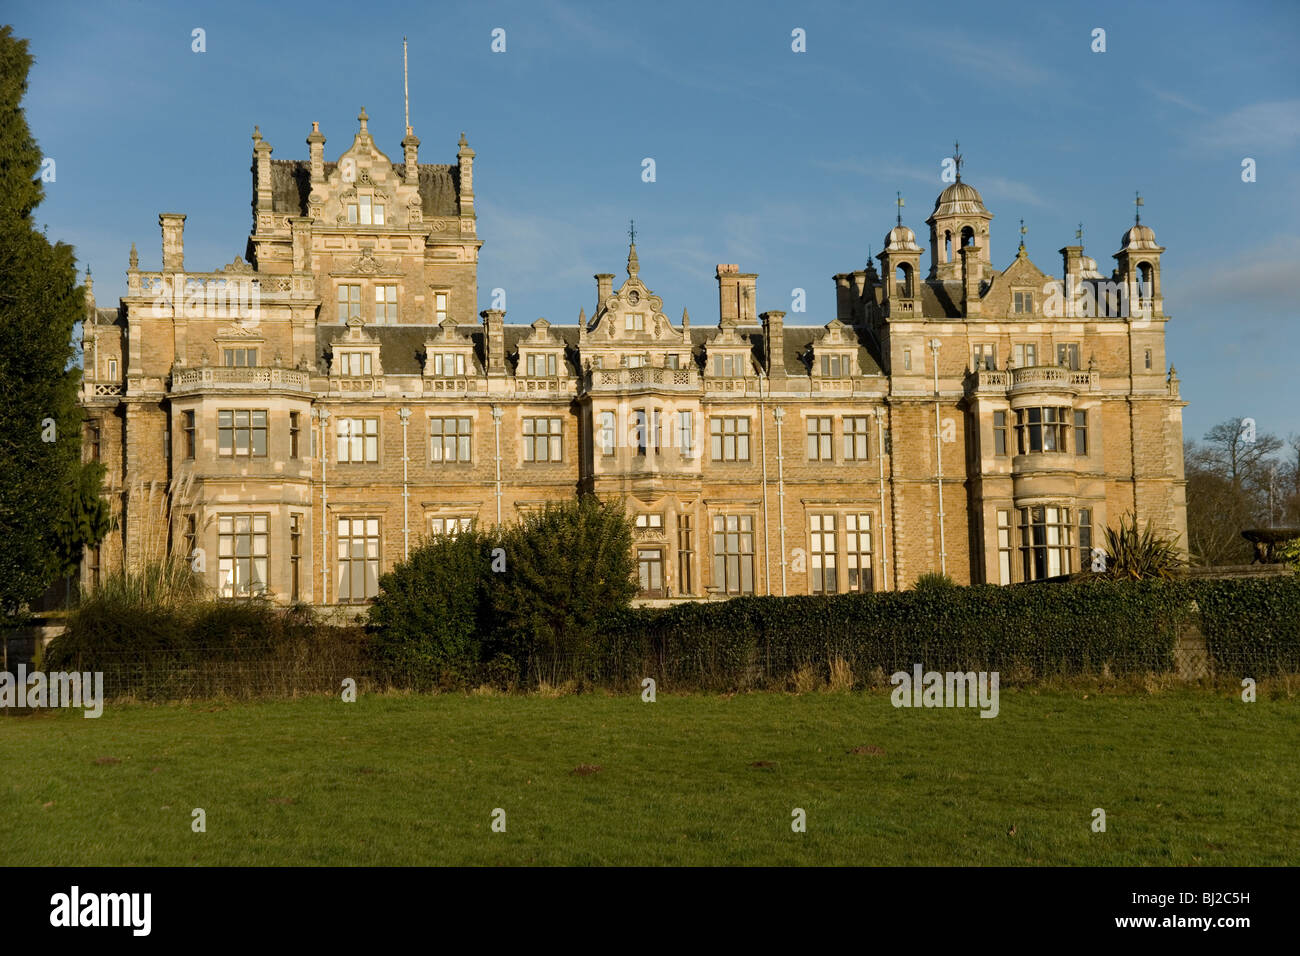 Thoresby Hall in Nottinghamshire England - Stock Image